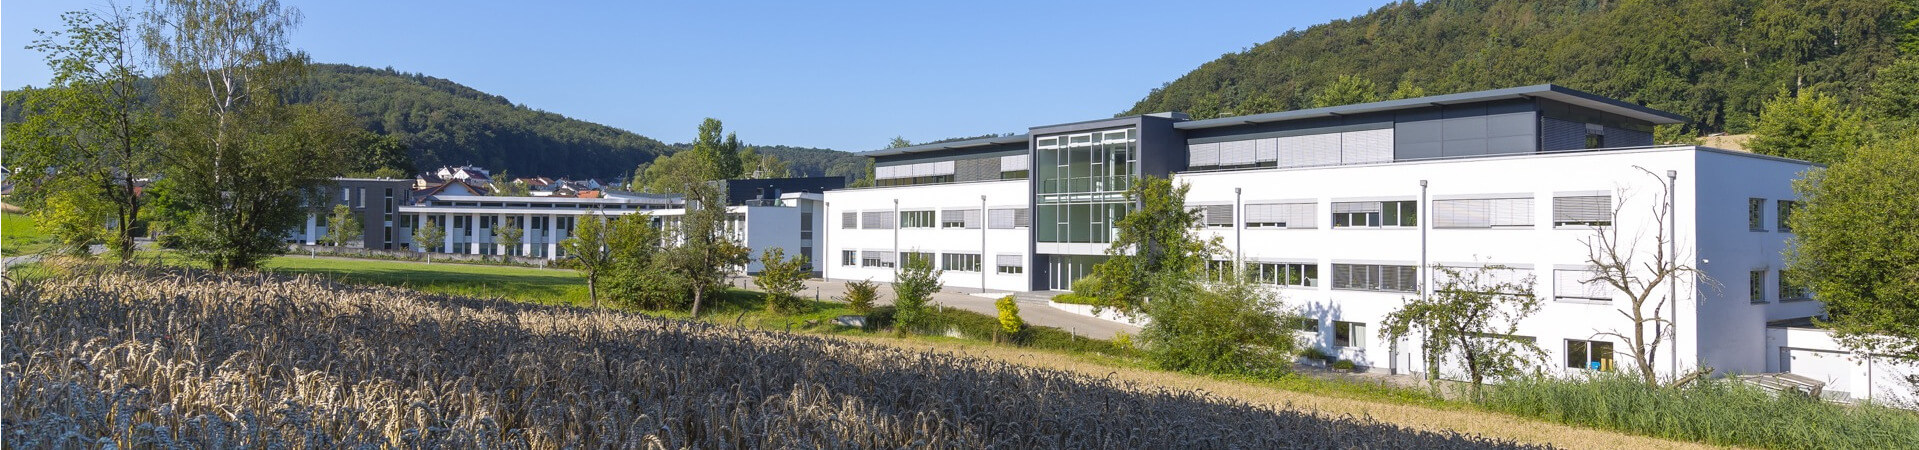 Industrial marking solutions made in Germany - Headquaters